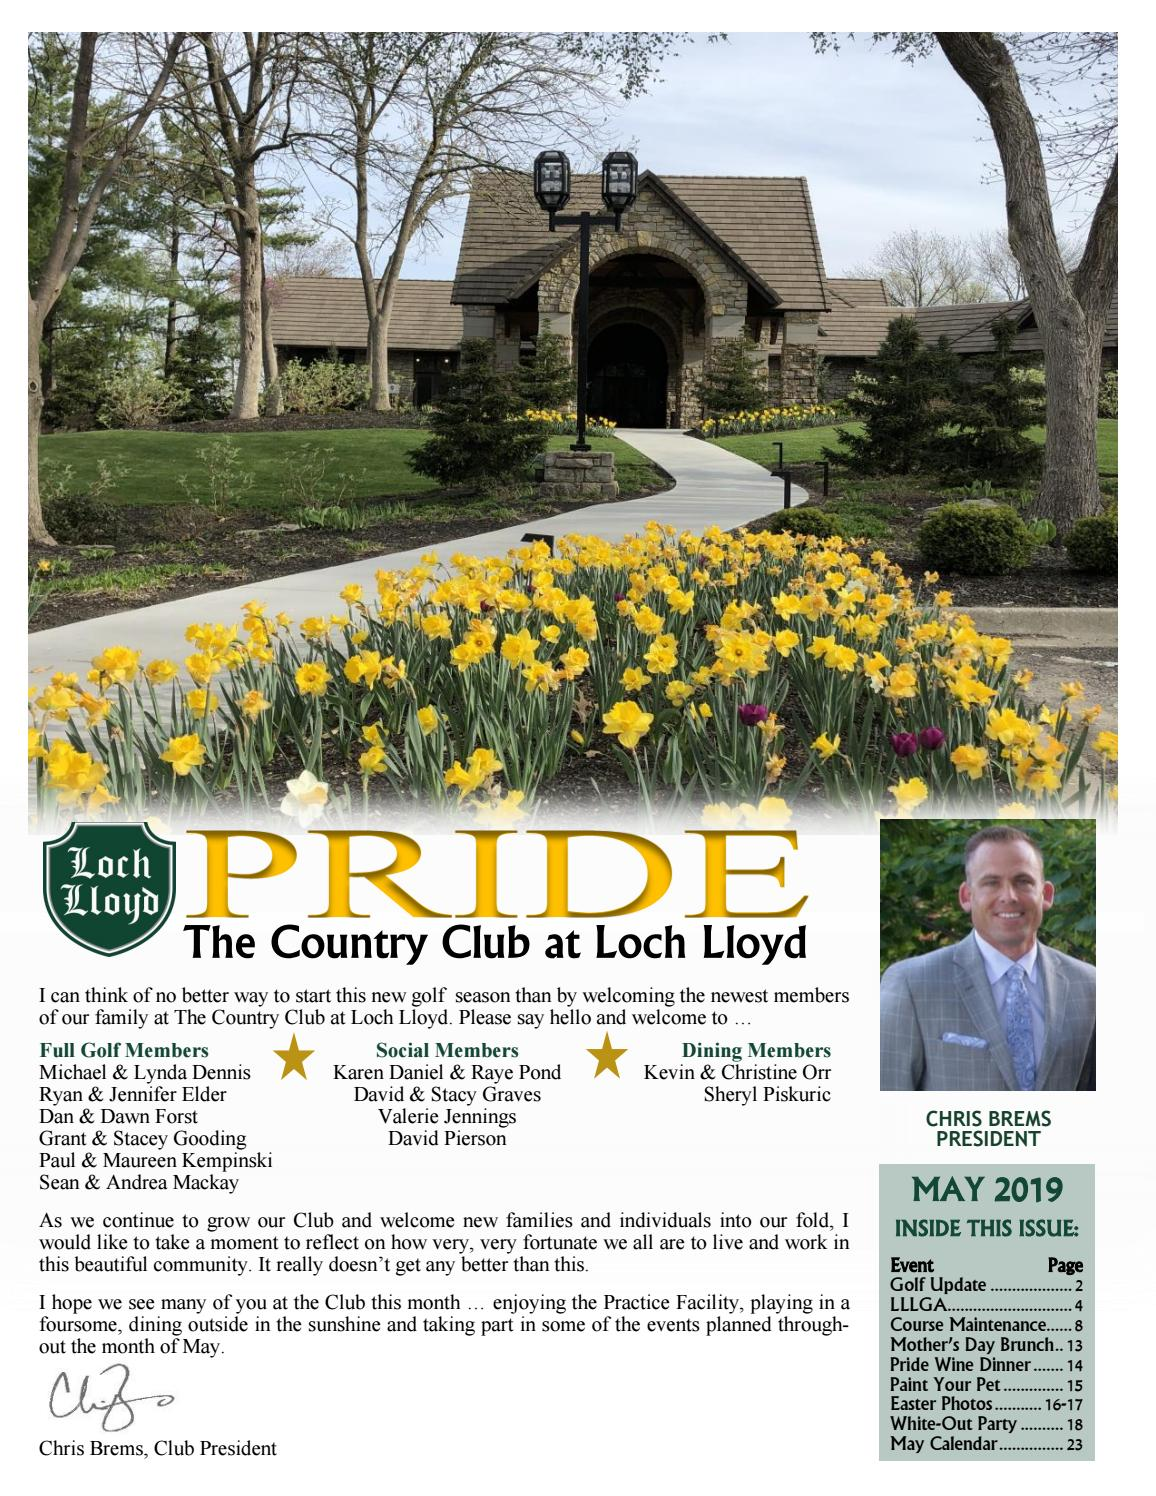 May 2019 Newsletter for The Country Club at Loch Lloyd by